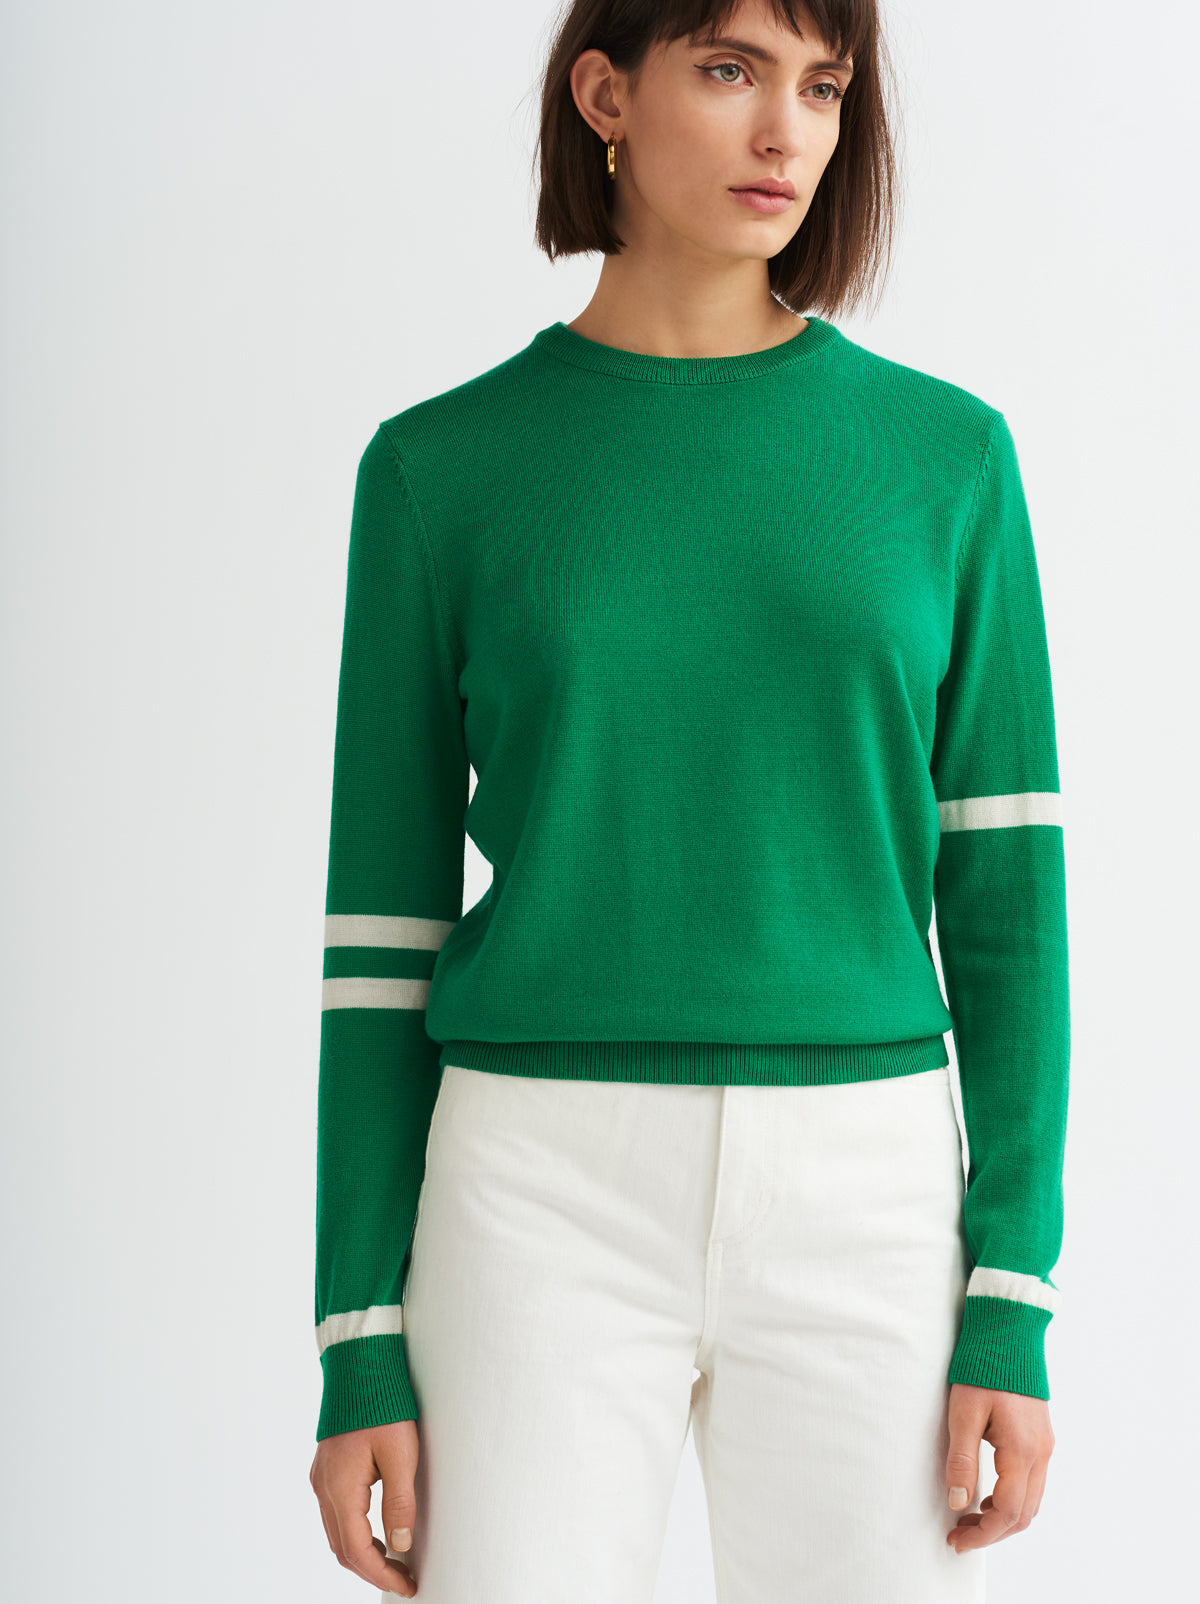 Iris Green Crew Neck Jumper